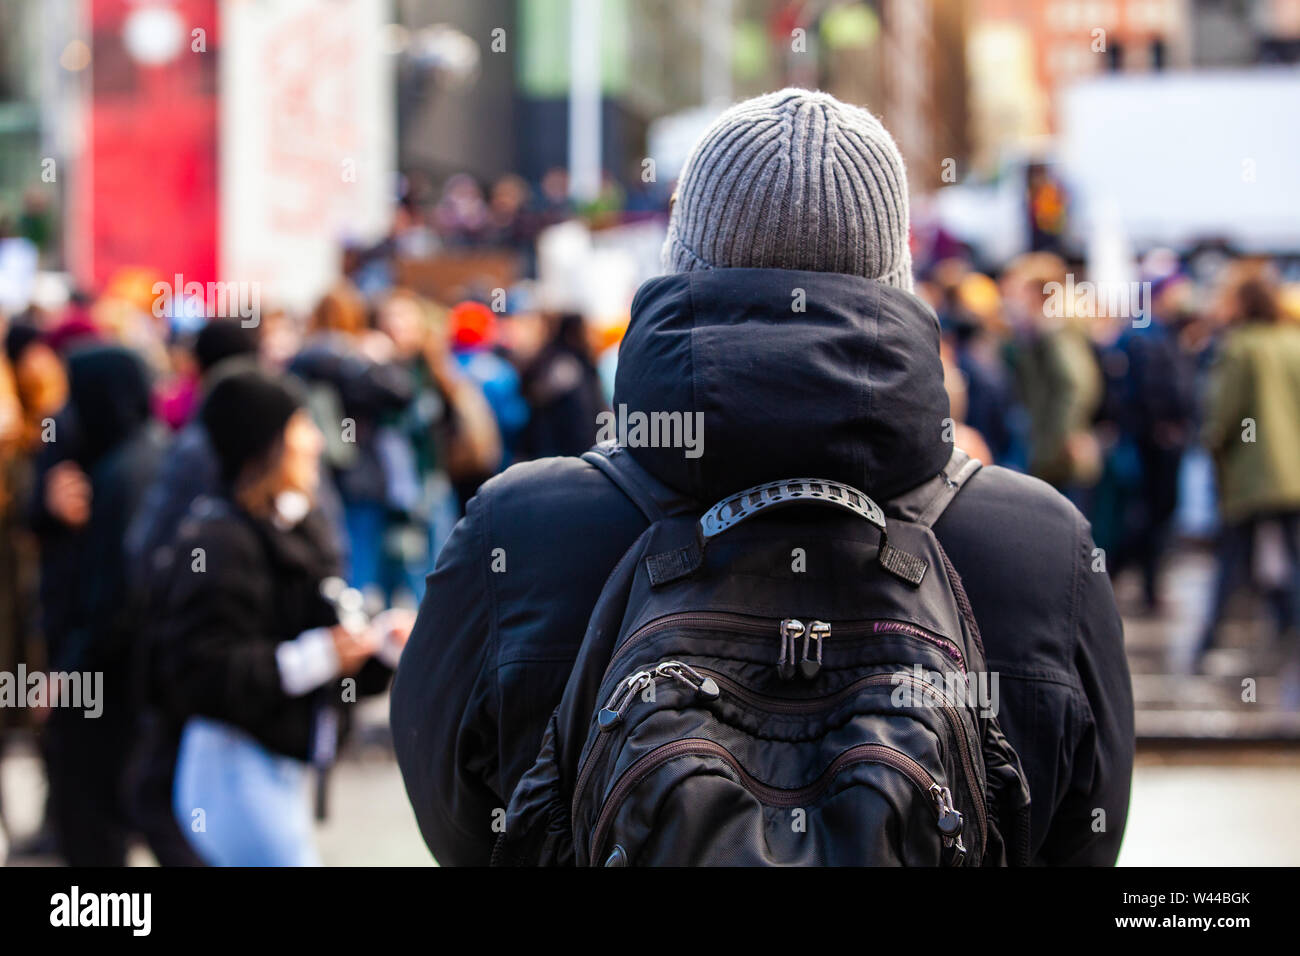 A man wearing a backpack is viewed from behind, as a large crowd of environmentalists is seen blurry in the background. with room for copy Stock Photo